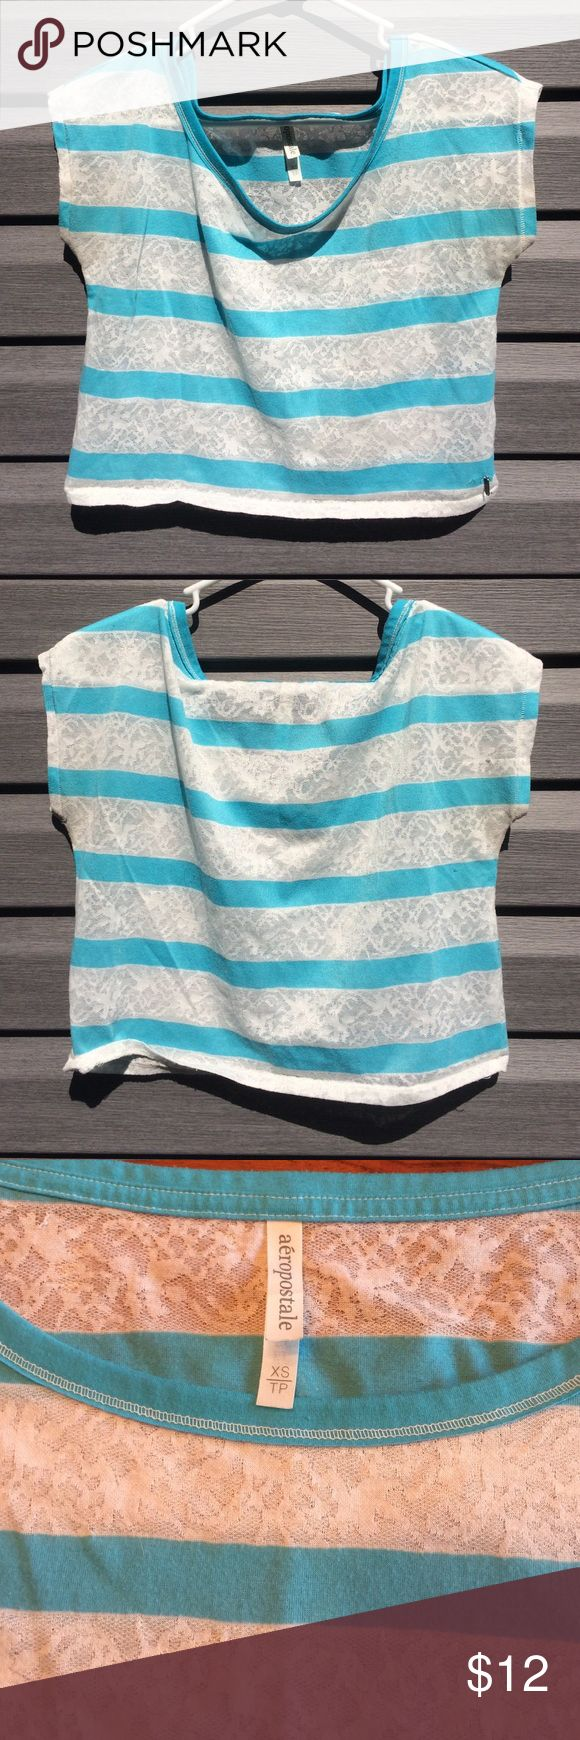 Aeropostale turquoise & white shirt Aeropostale turquoise & white striped shirt. It's a short half shirt with white being the lace. In good condition. Aeropostale Tops Tees - Short Sleeve